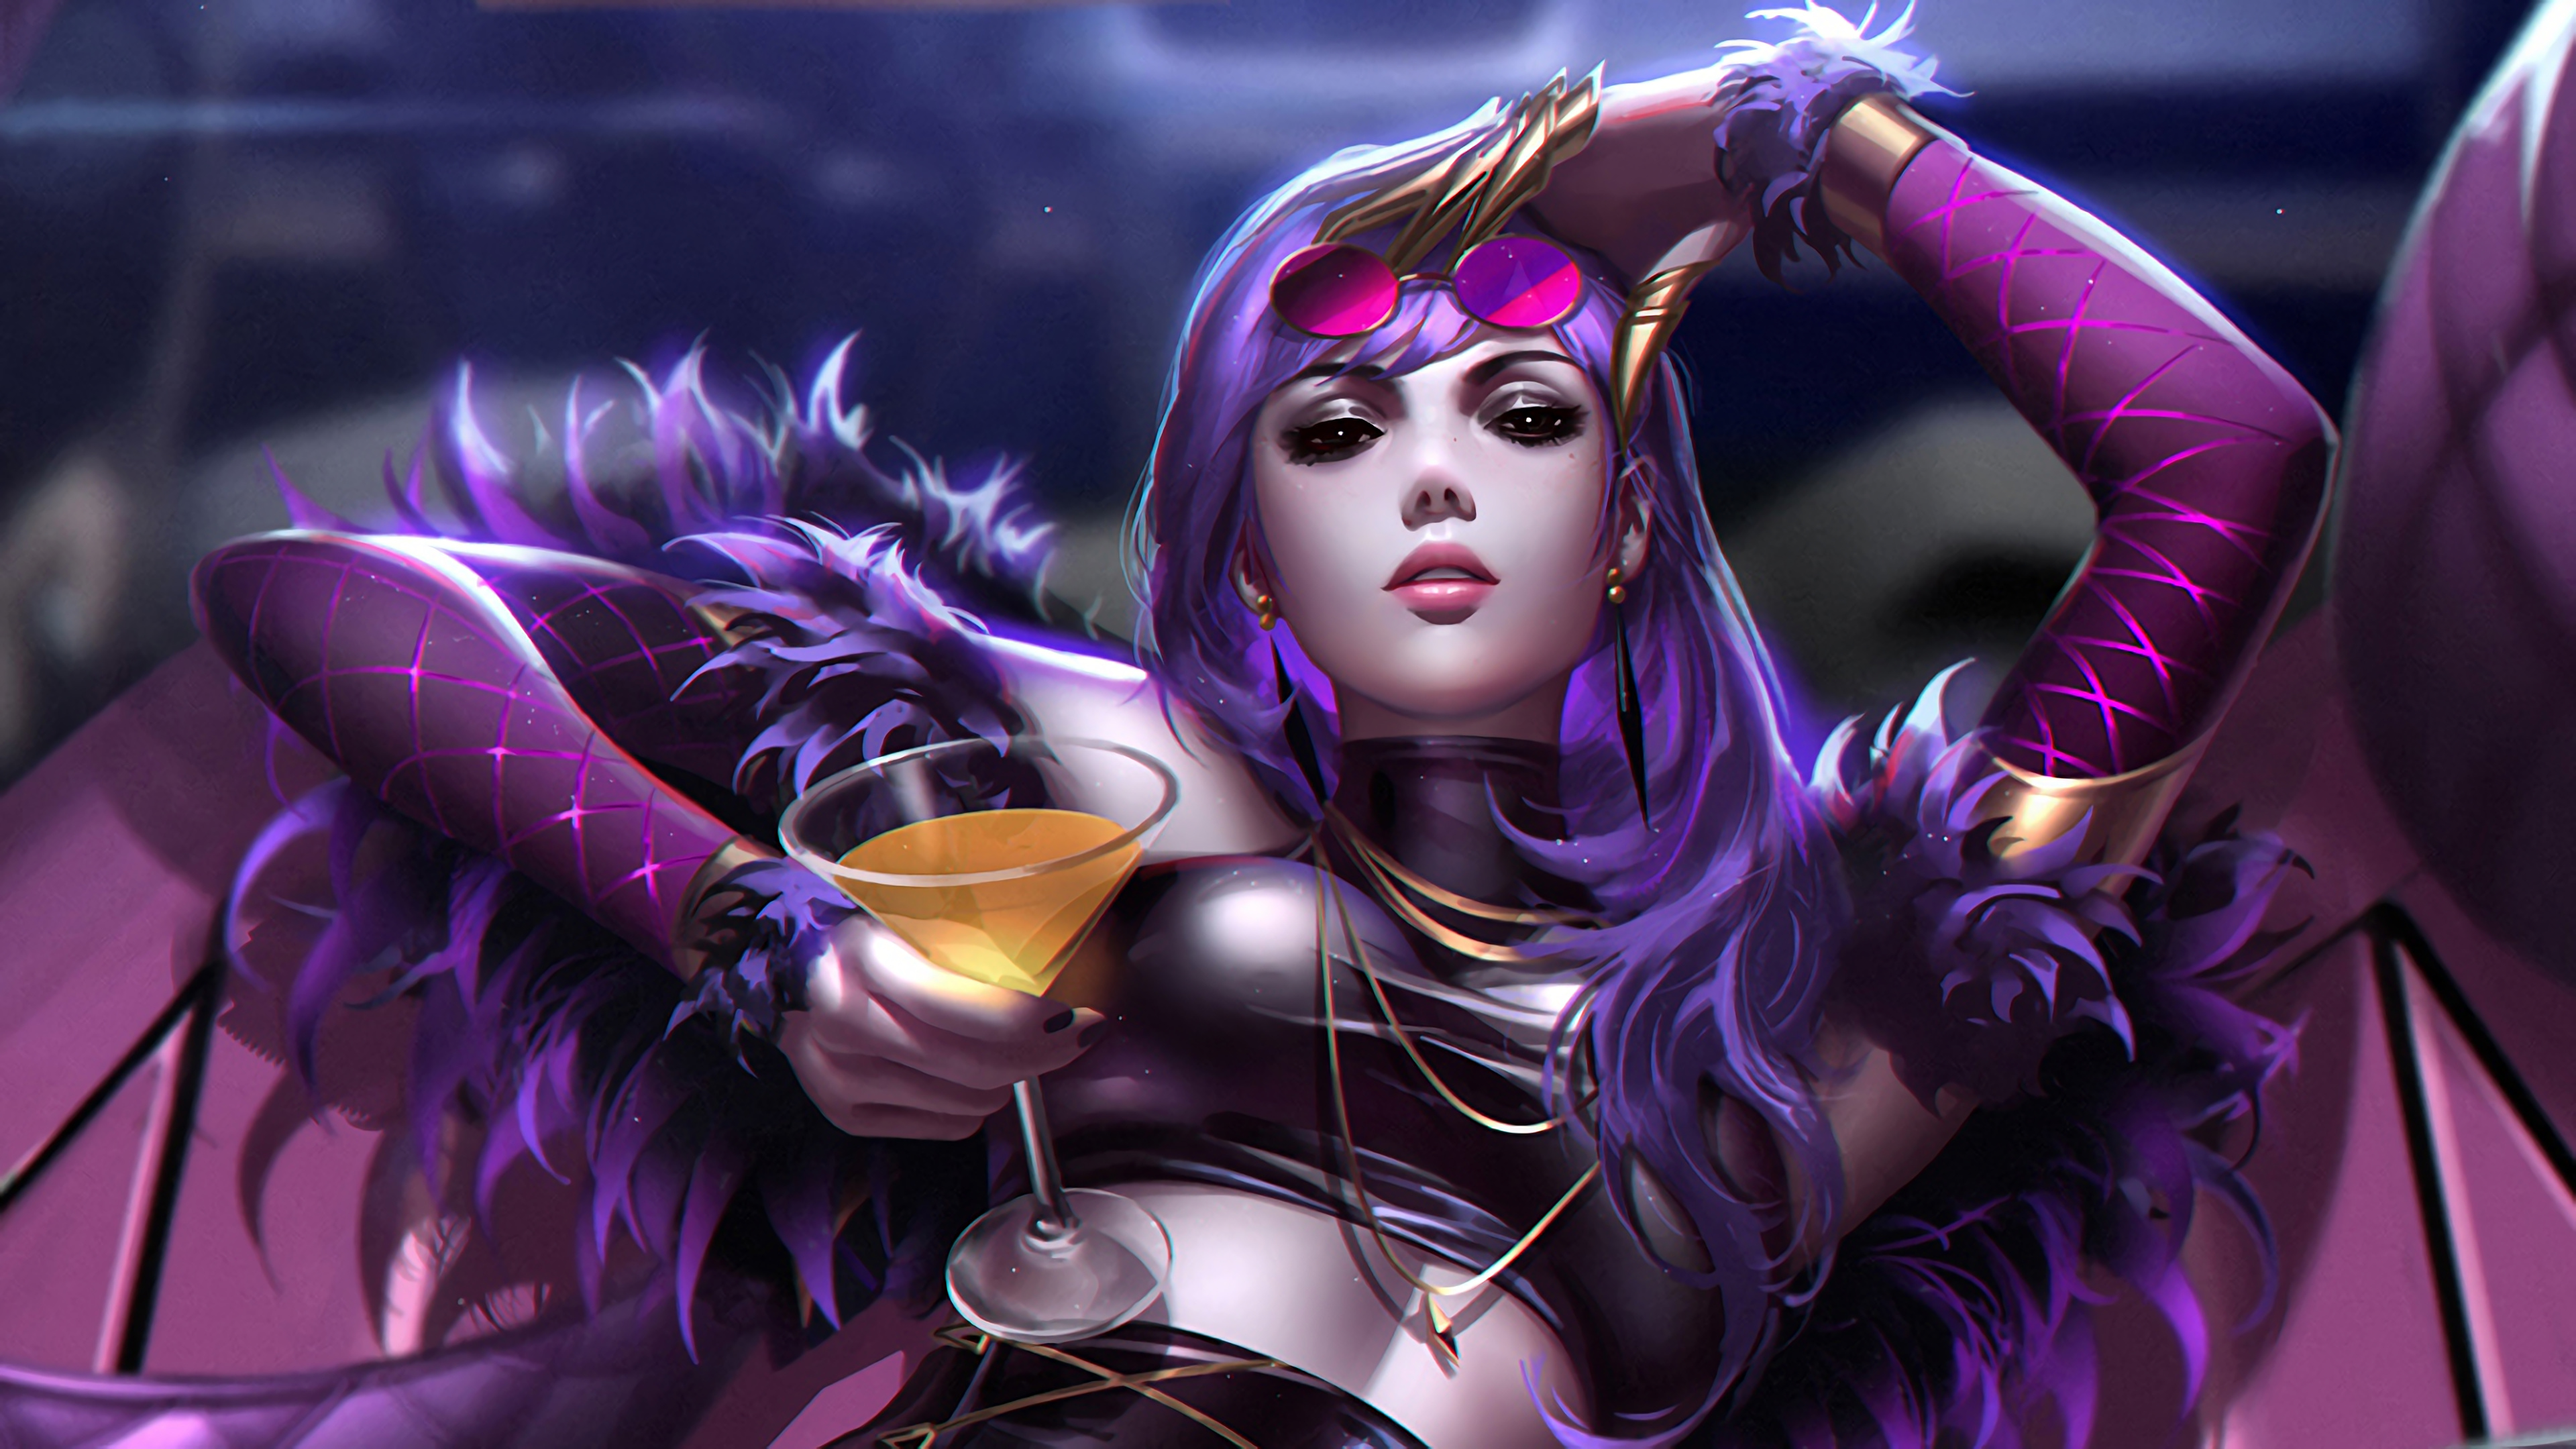 Kda Evelynn Lol Hd Games 4k Wallpapers Images Backgrounds